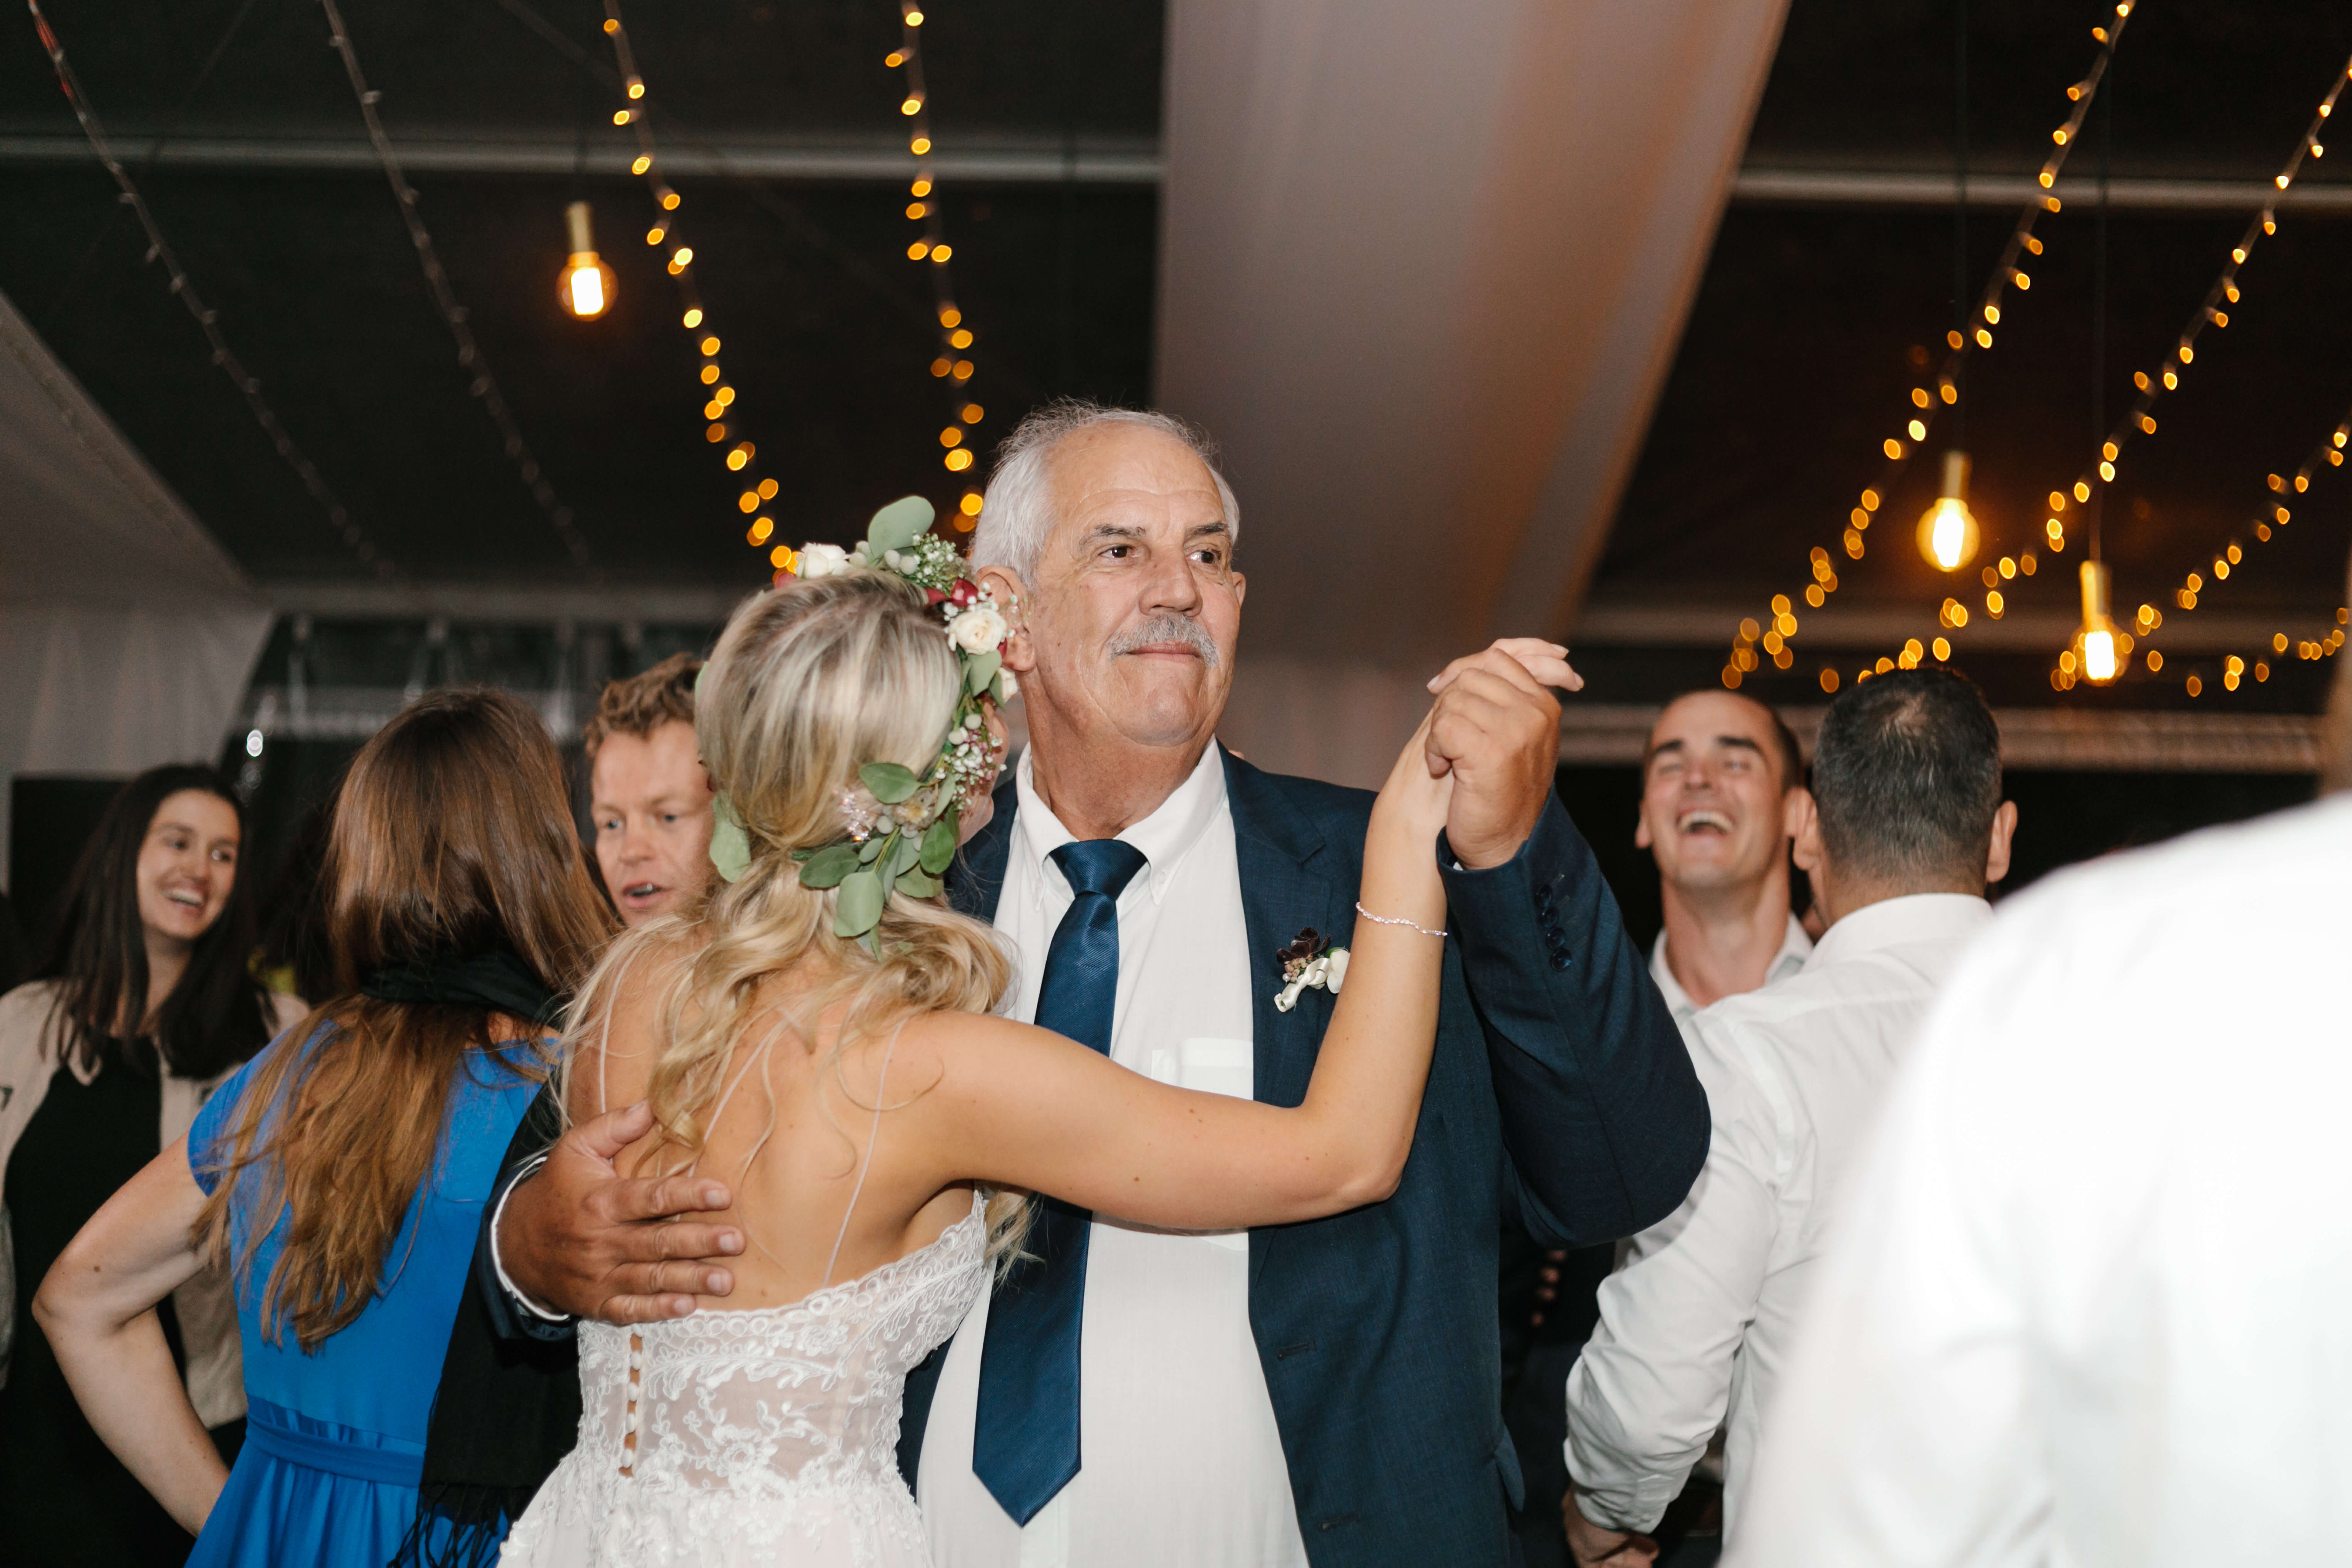 A proud father and his daughter dancing at her wedding.